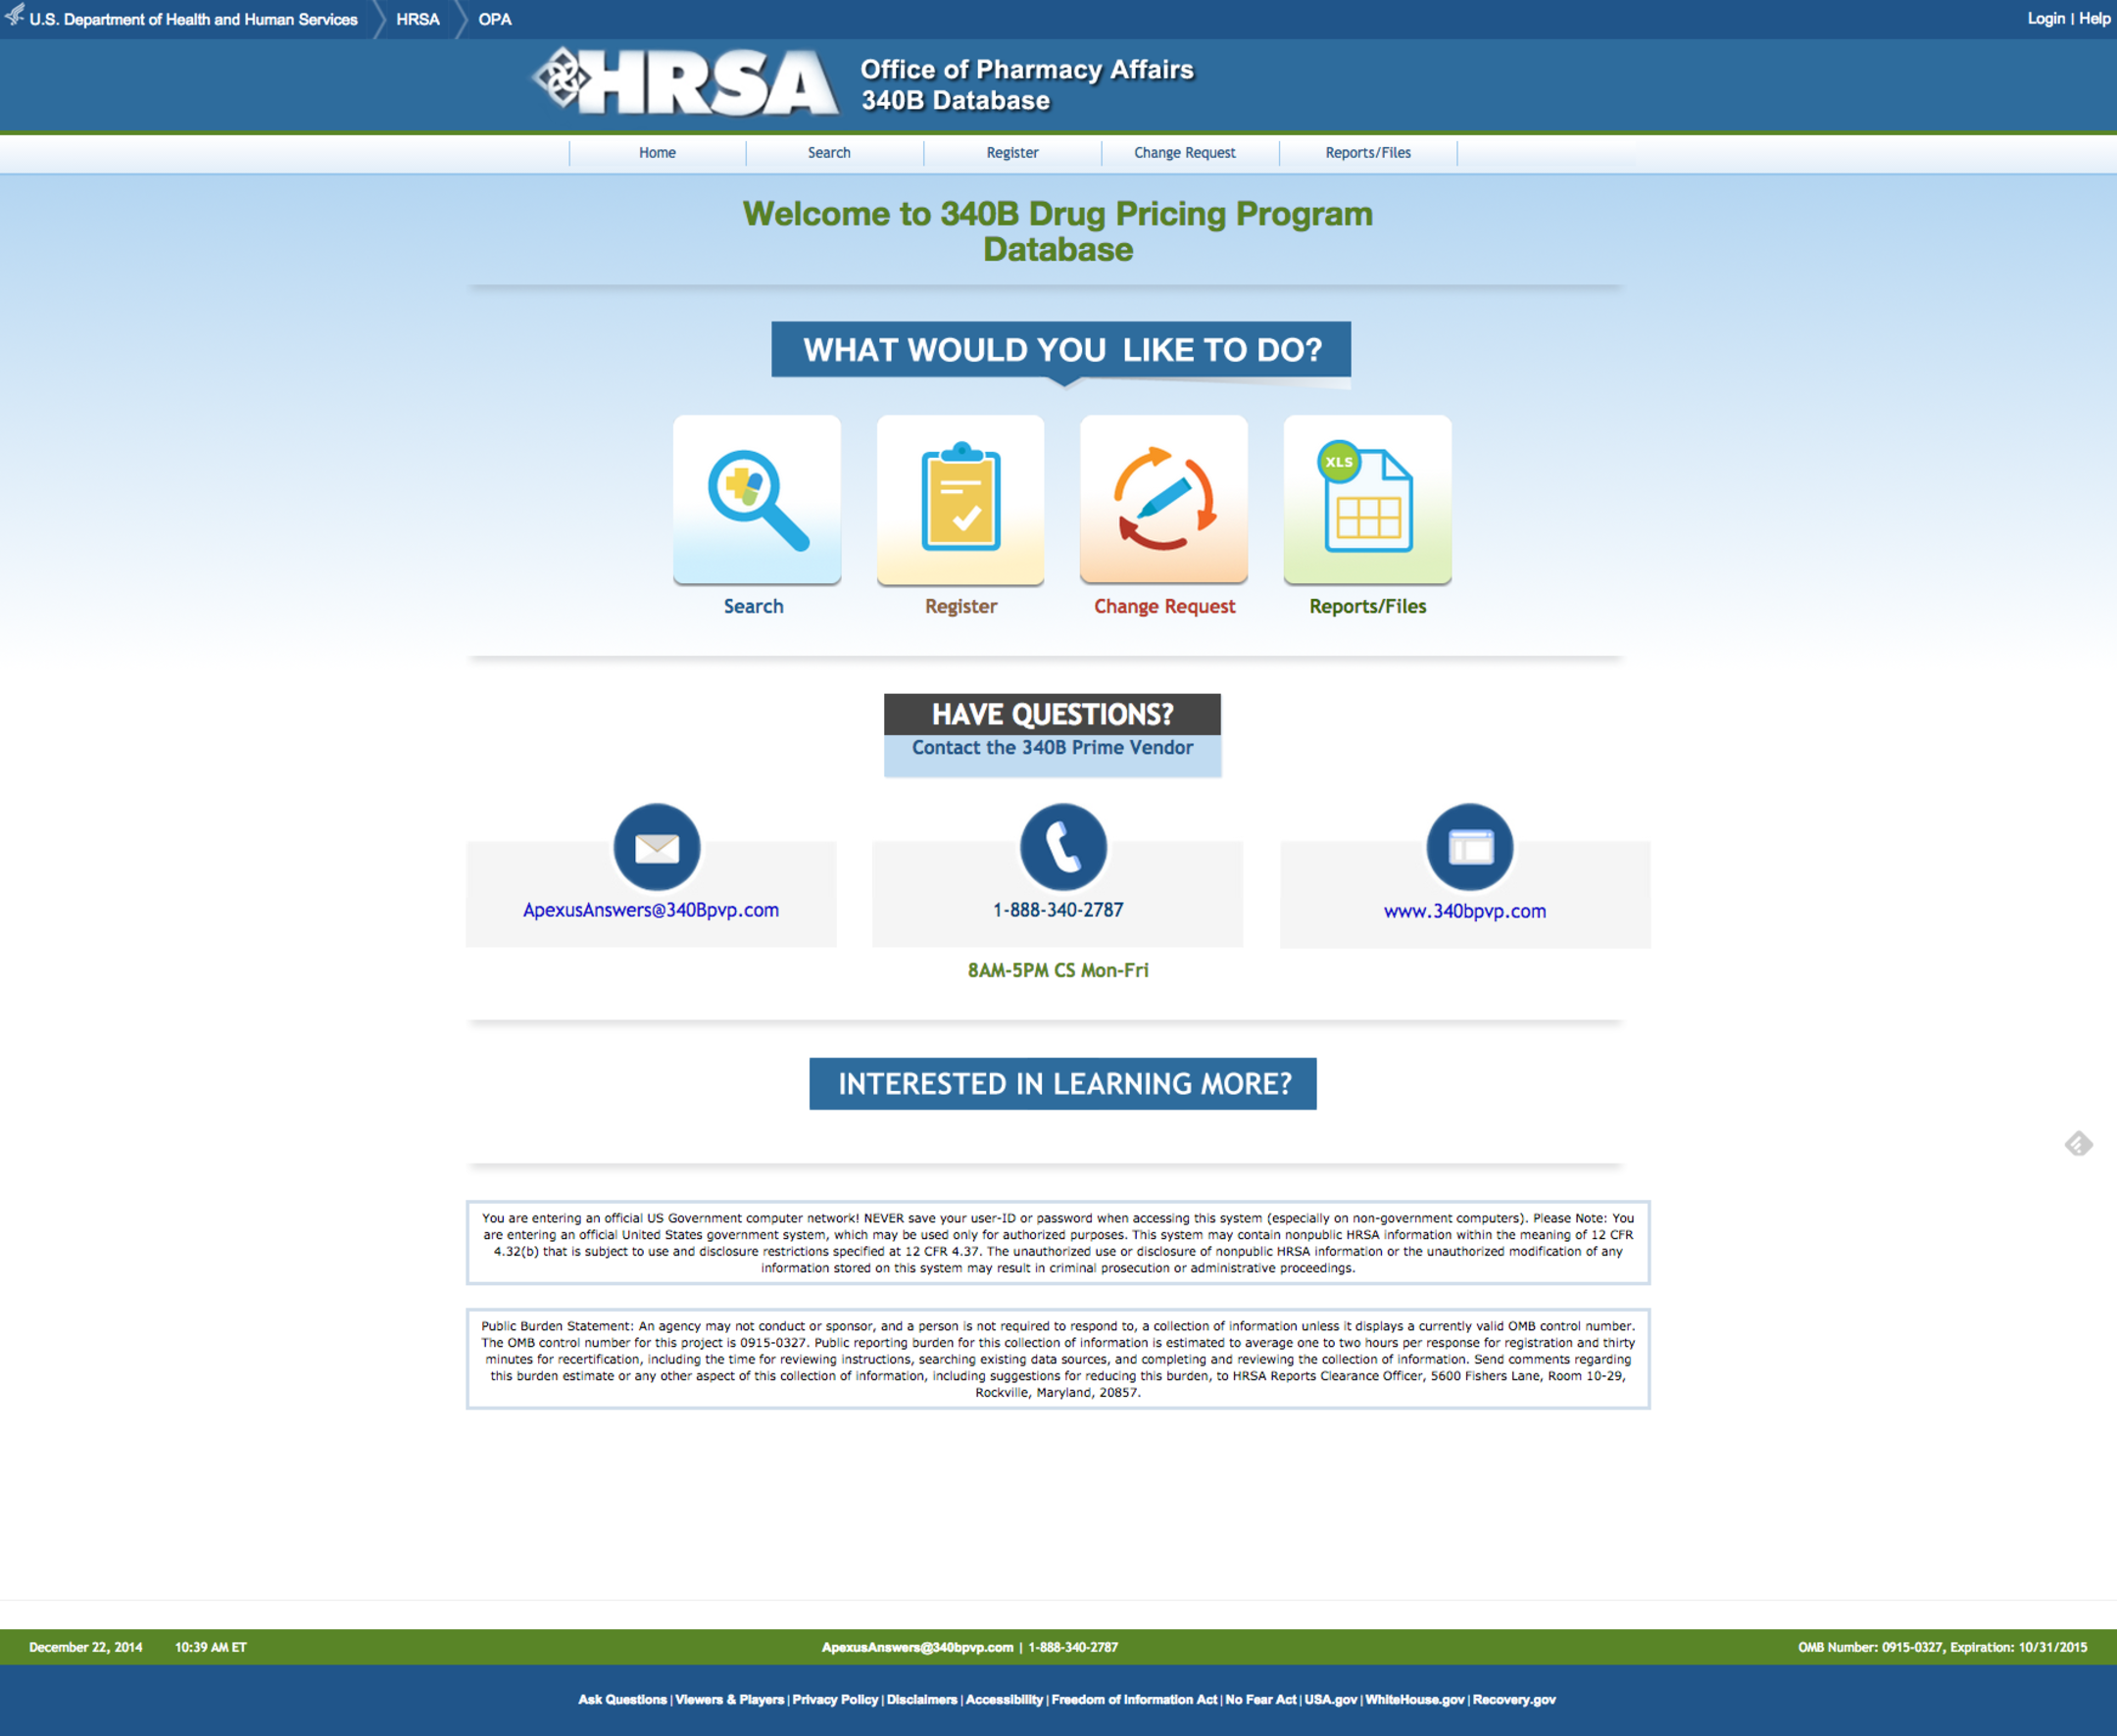 HRSA 340b Drug Pricing Program Database